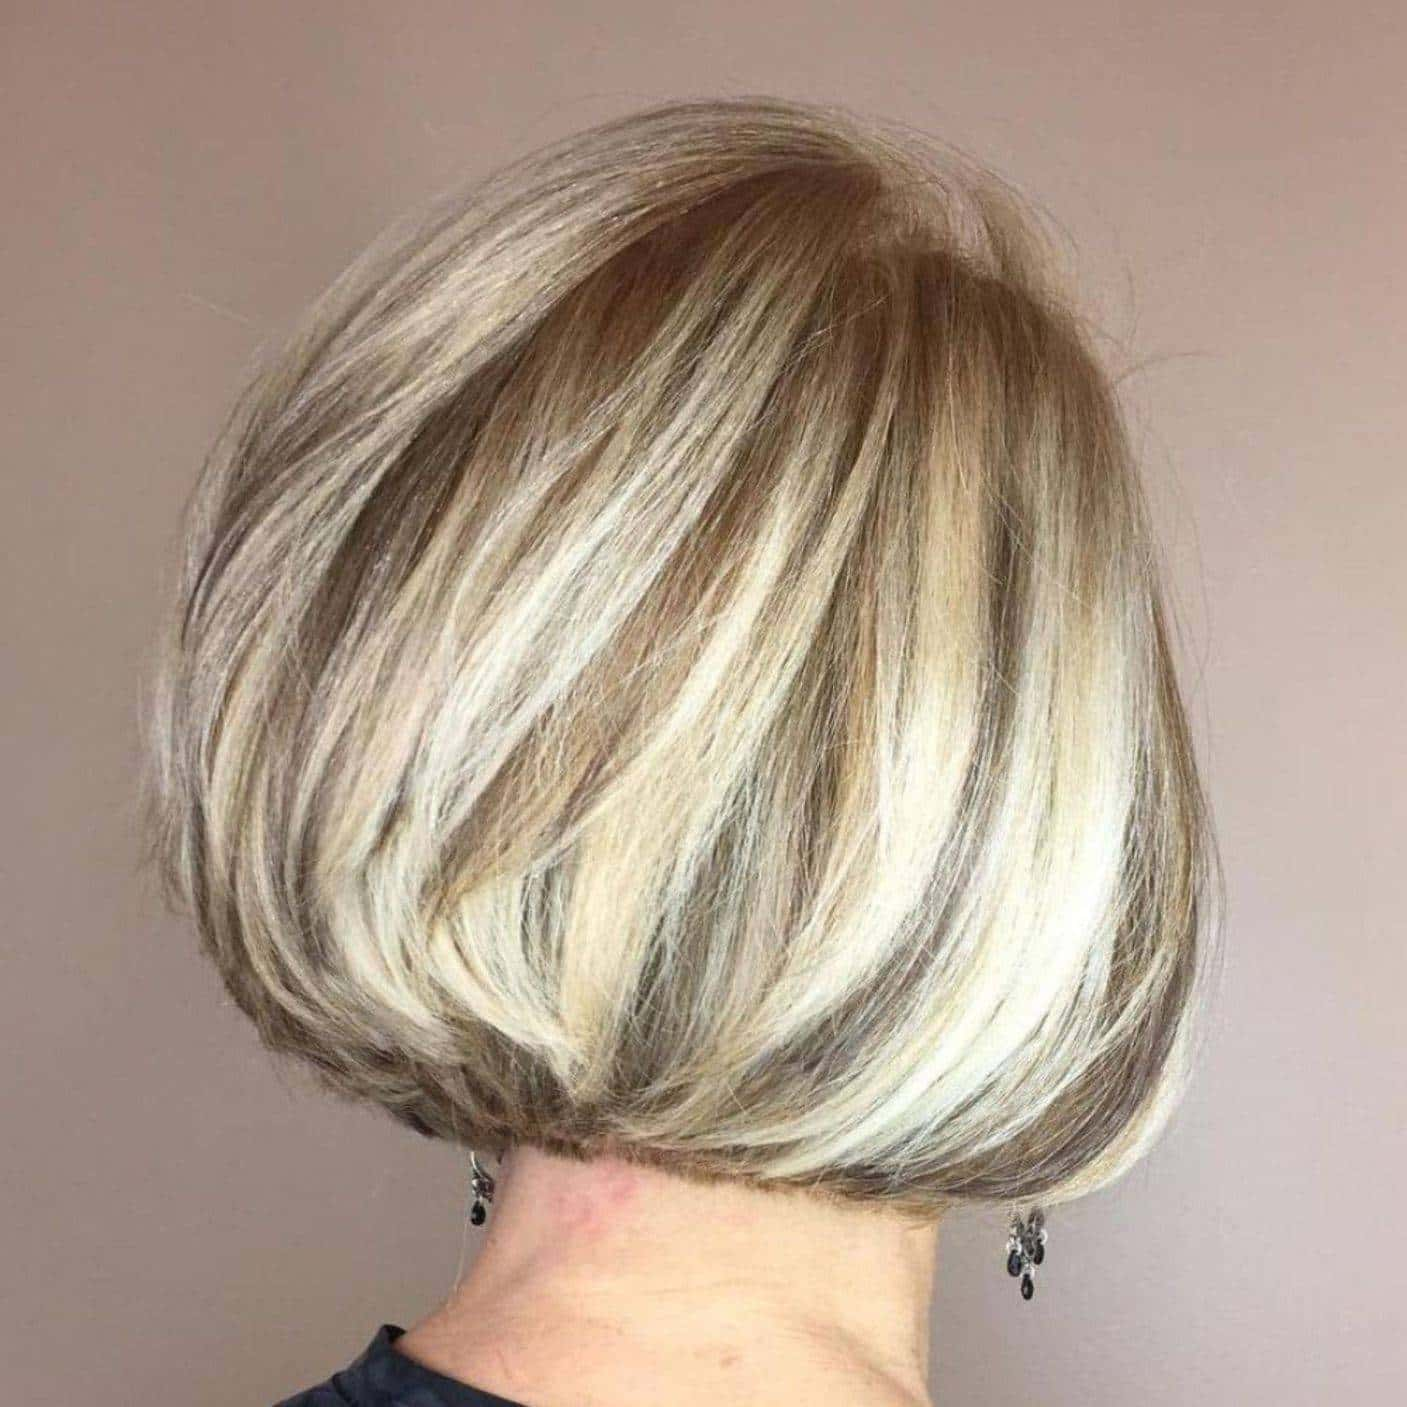 20 Best Short Hairdos For Women Over 60 That Will Take 20 Years Off Your Face_31